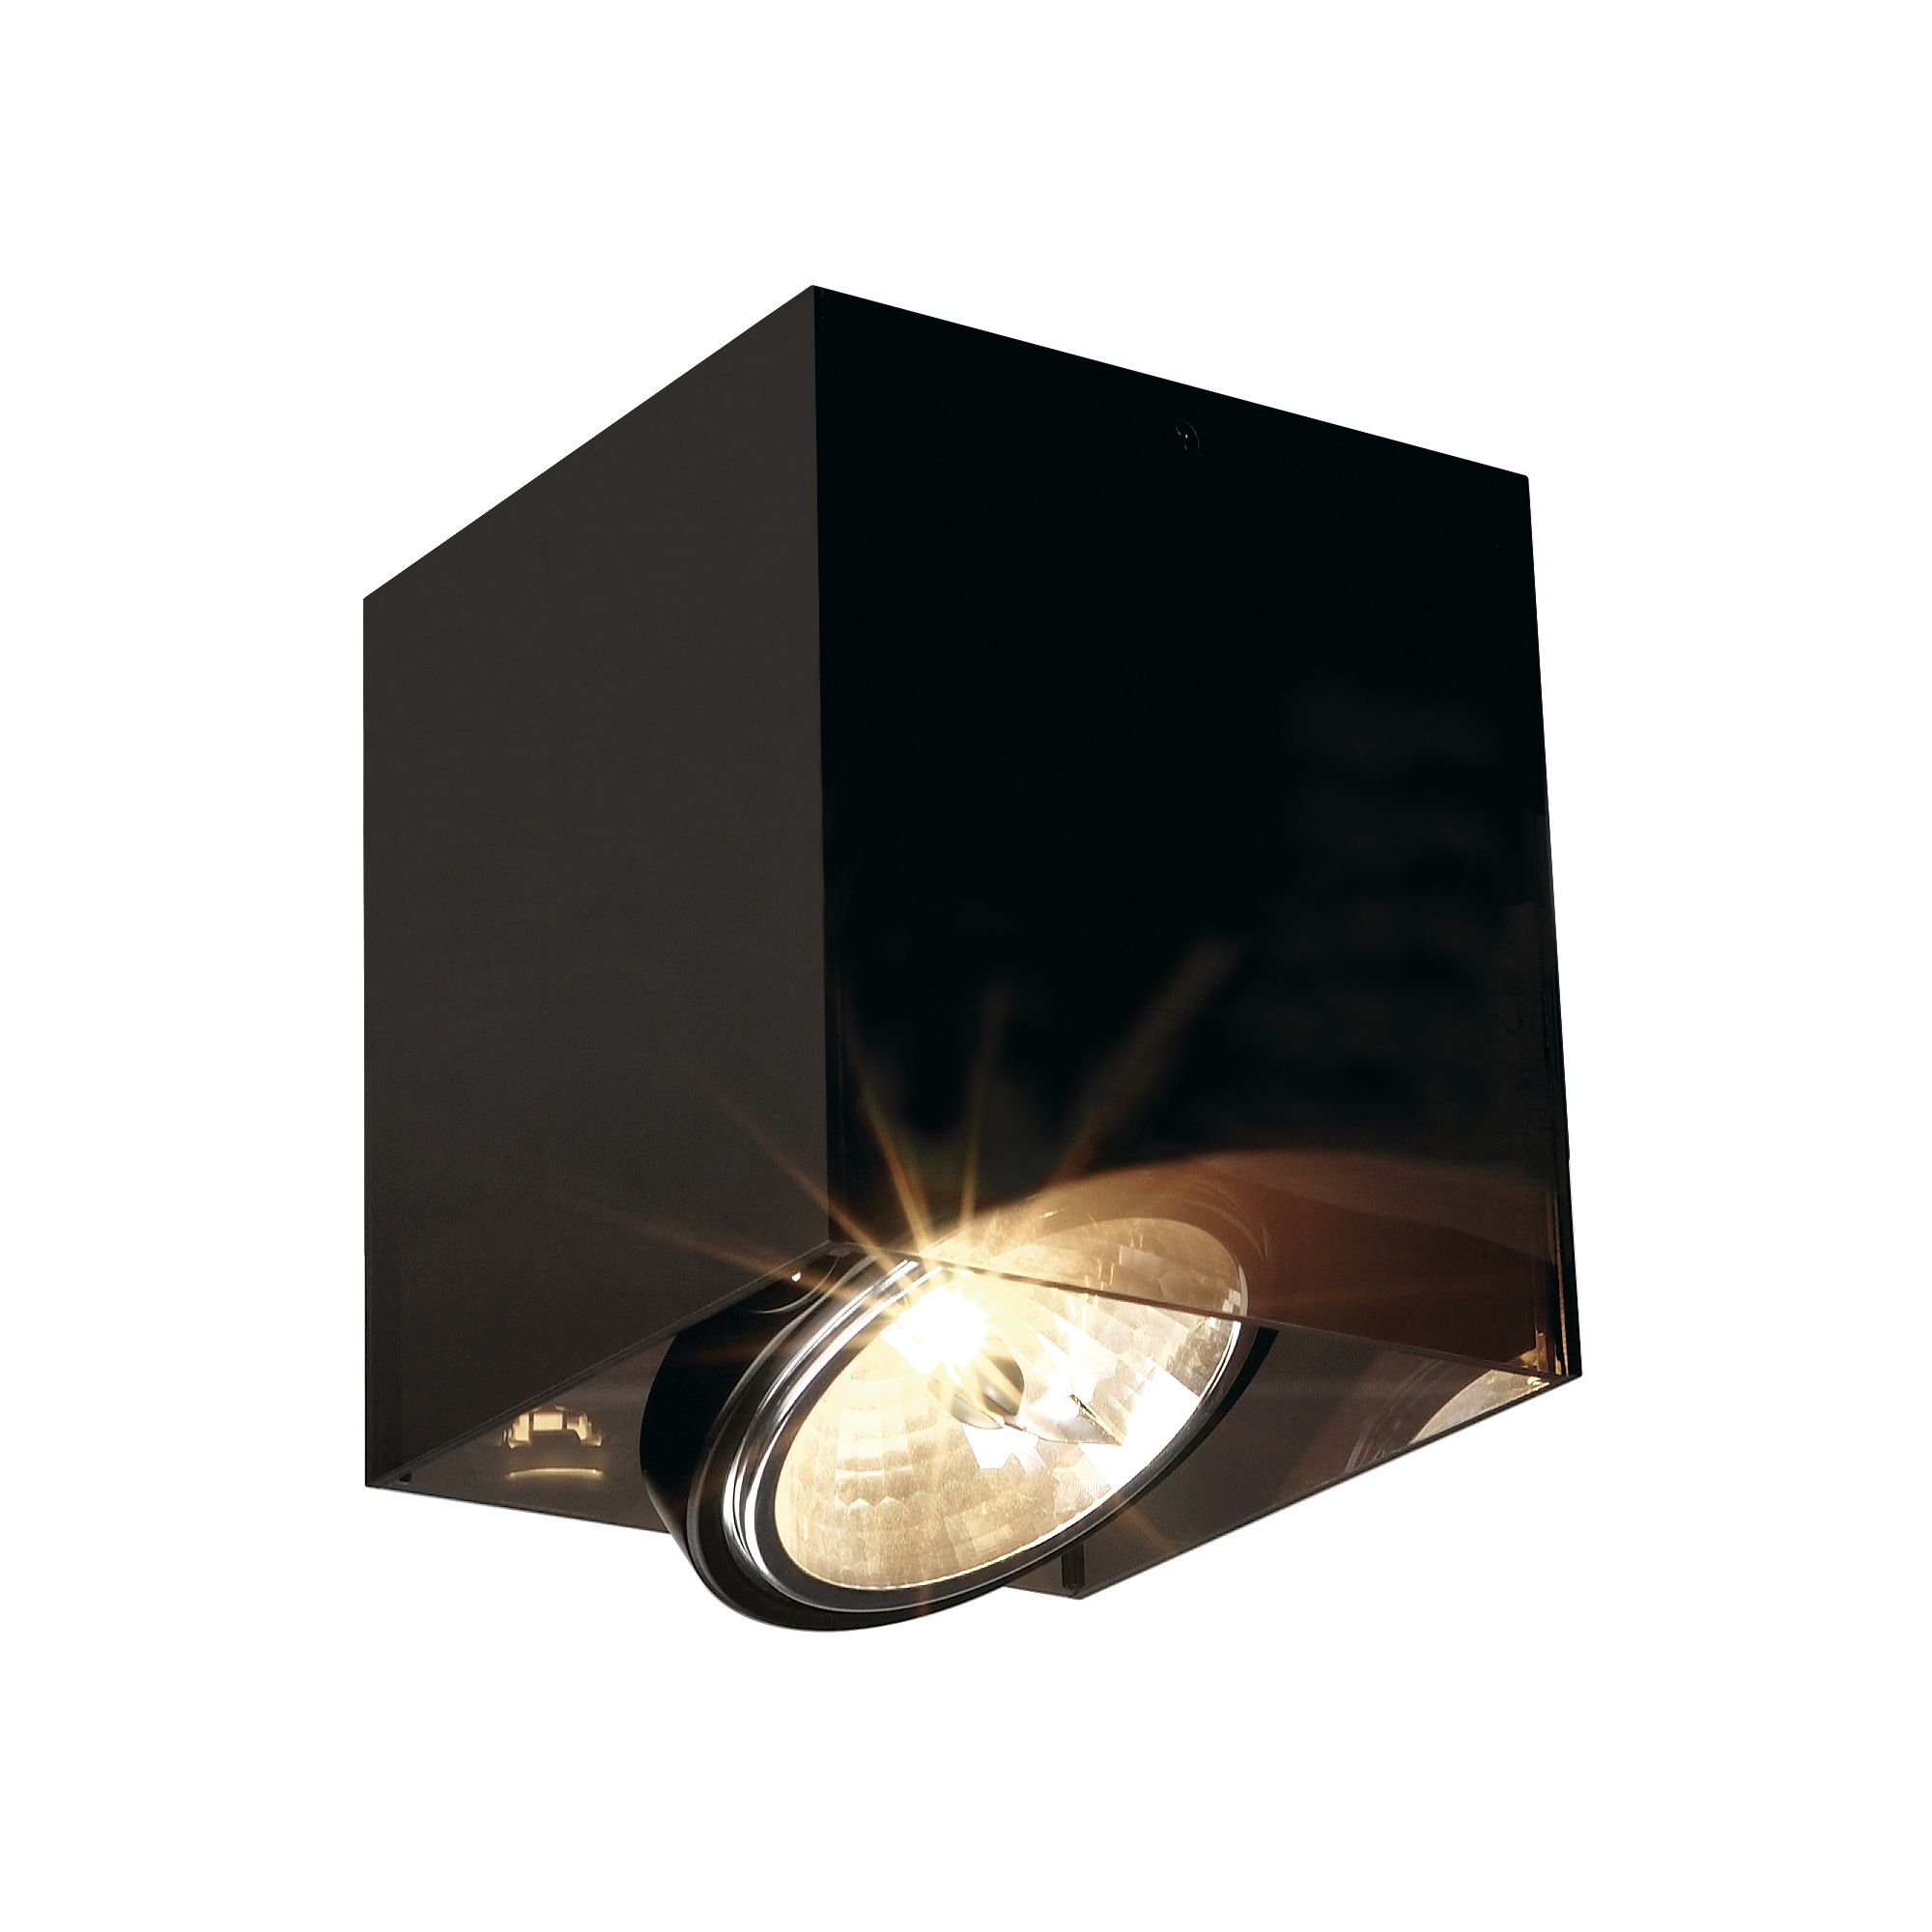 Slv Spot Light In Black